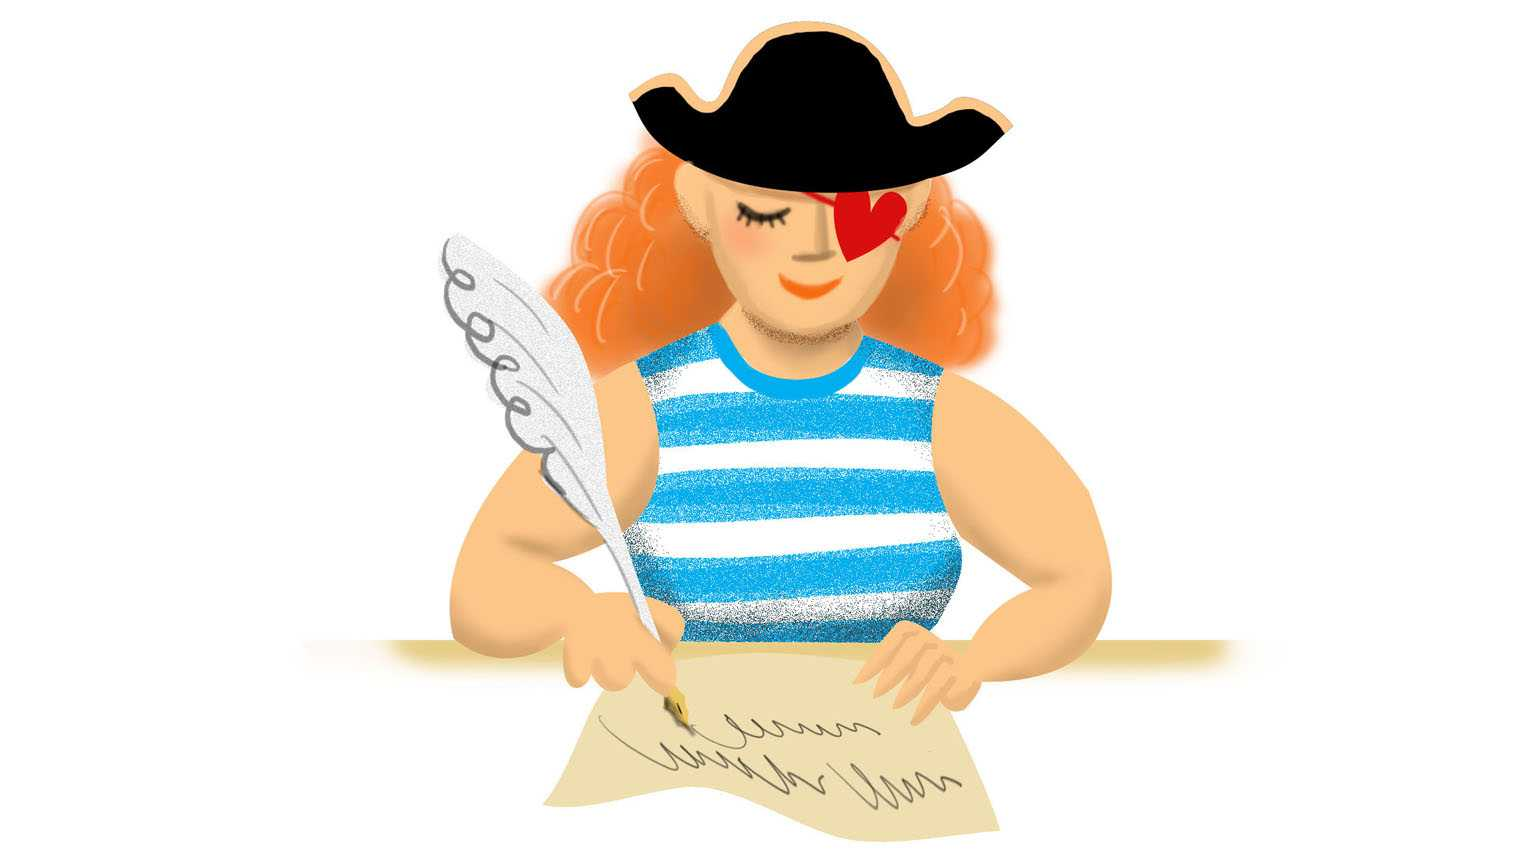 An artist' rendering of a young woman with a pirate hat writing a letter.